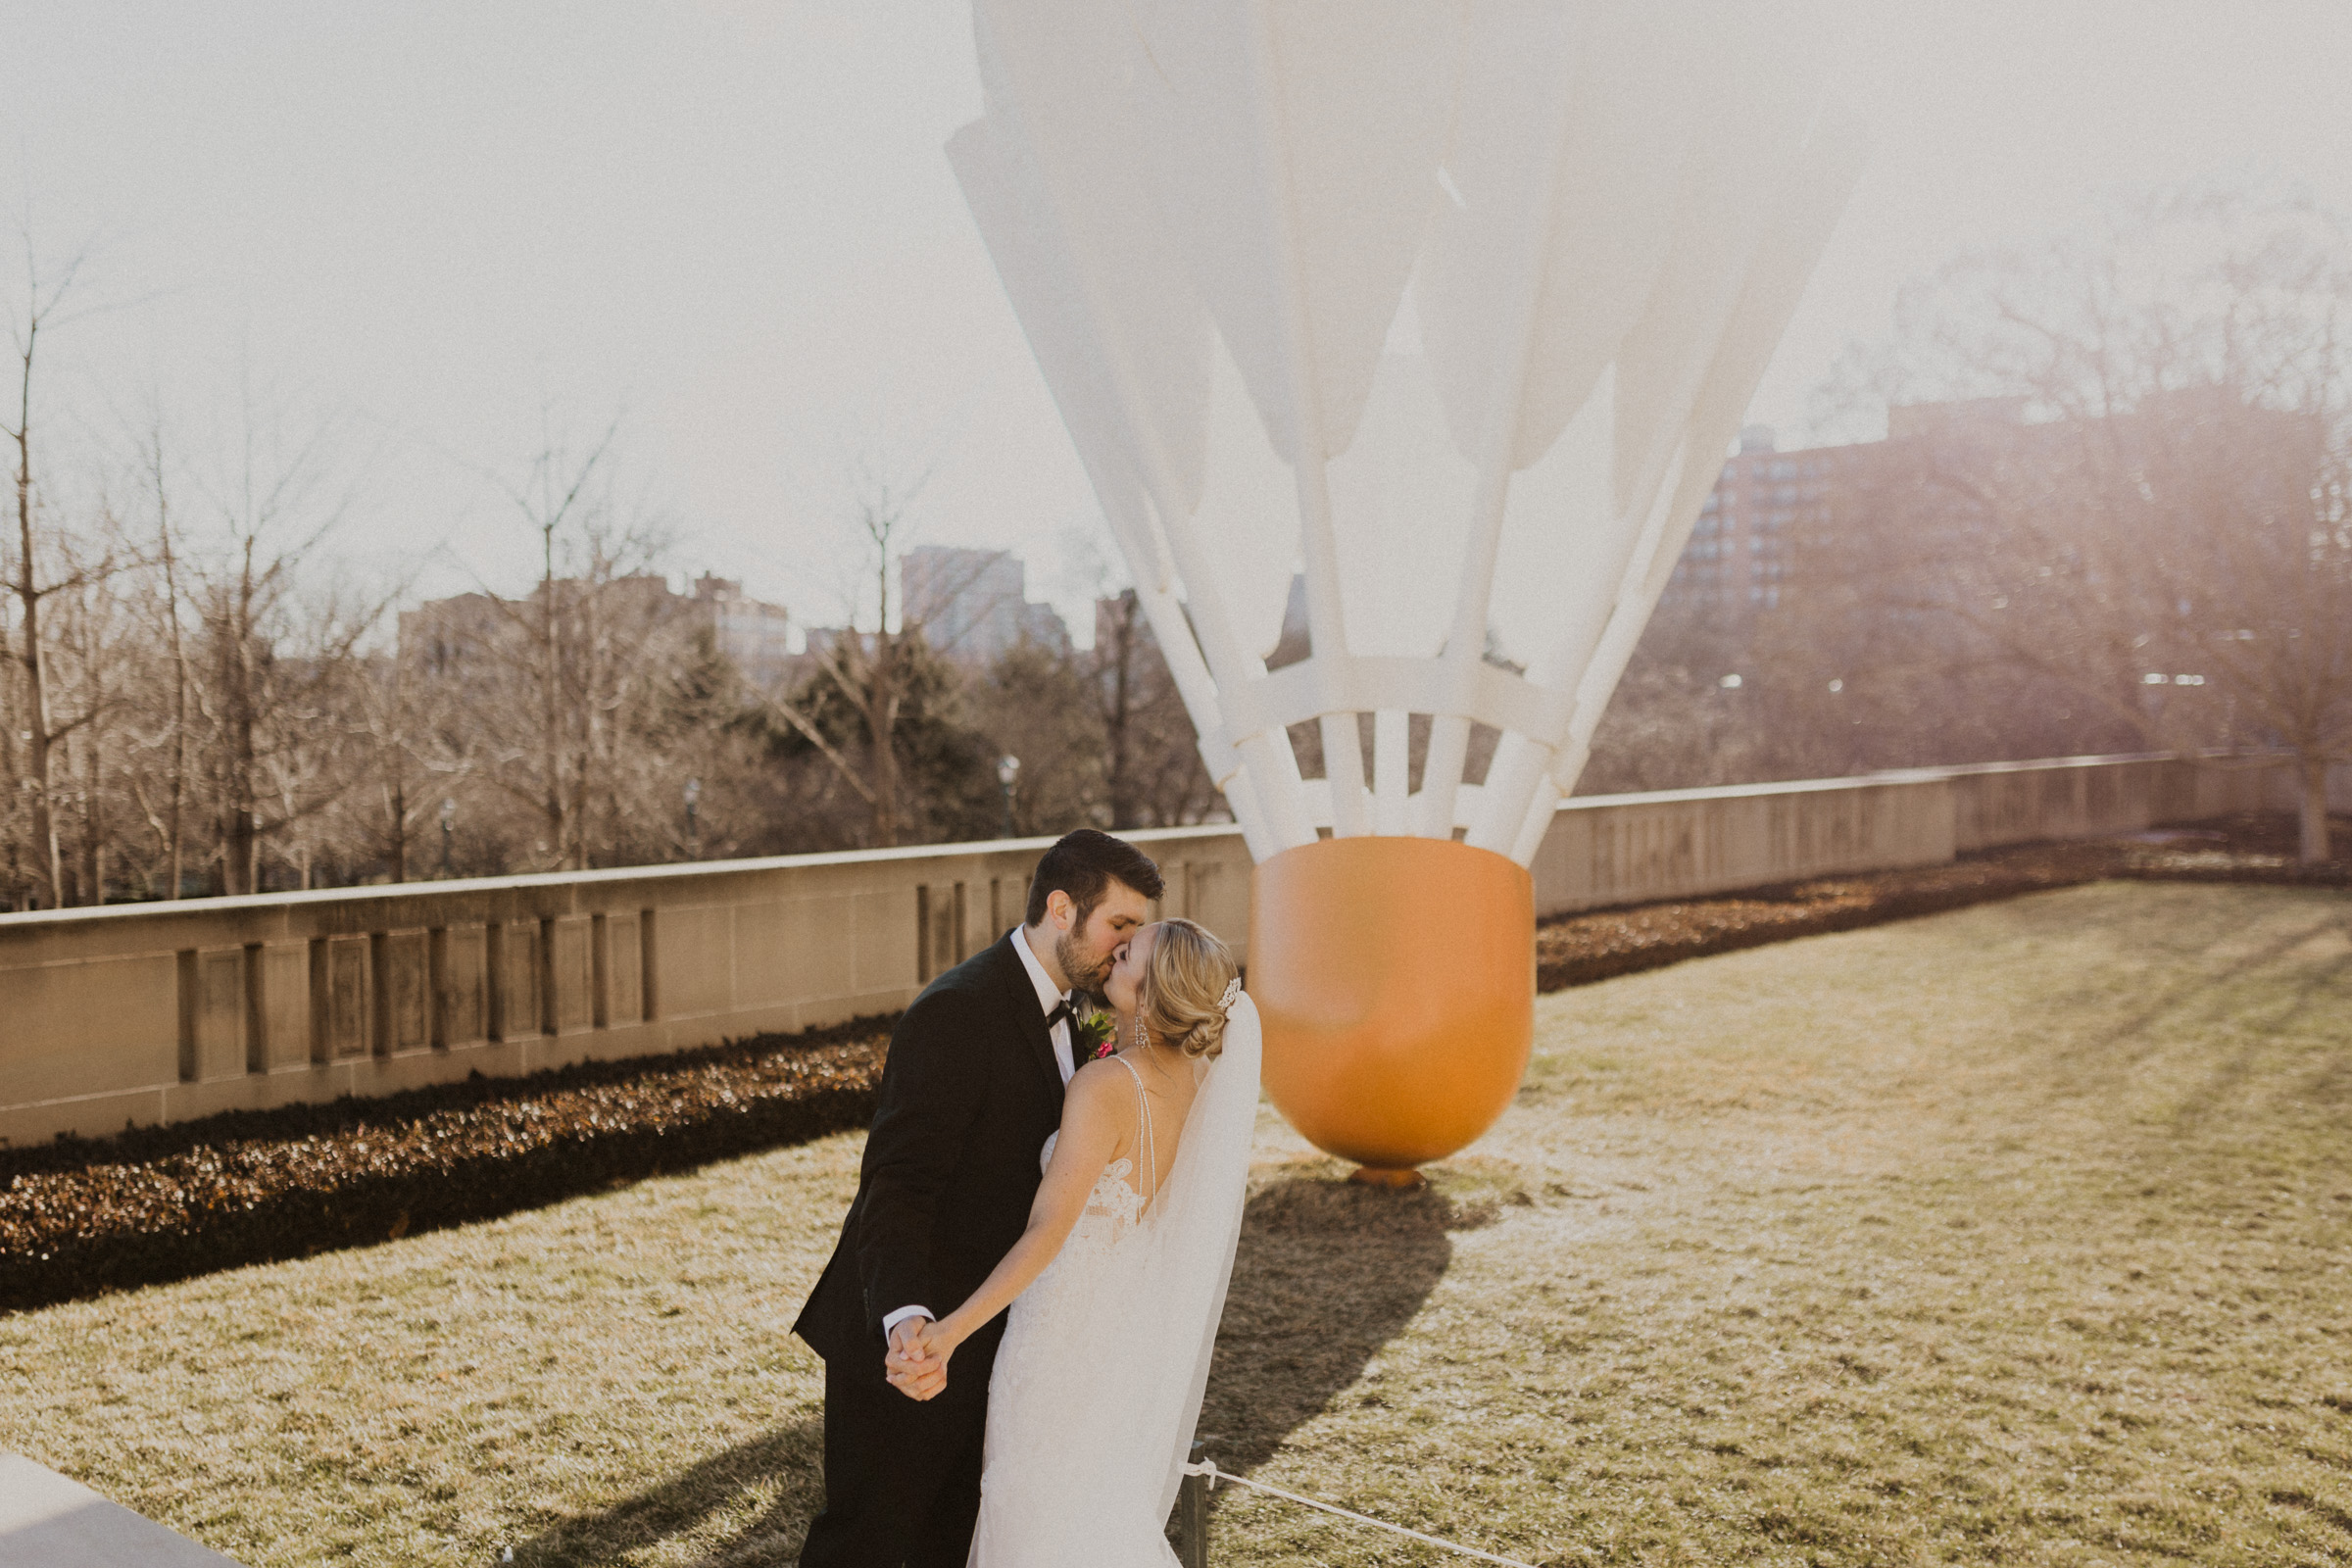 alyssa barletter photography nelson atkins museum intimate romantic spring wedding pilgrim chapel kcmo-21.jpg